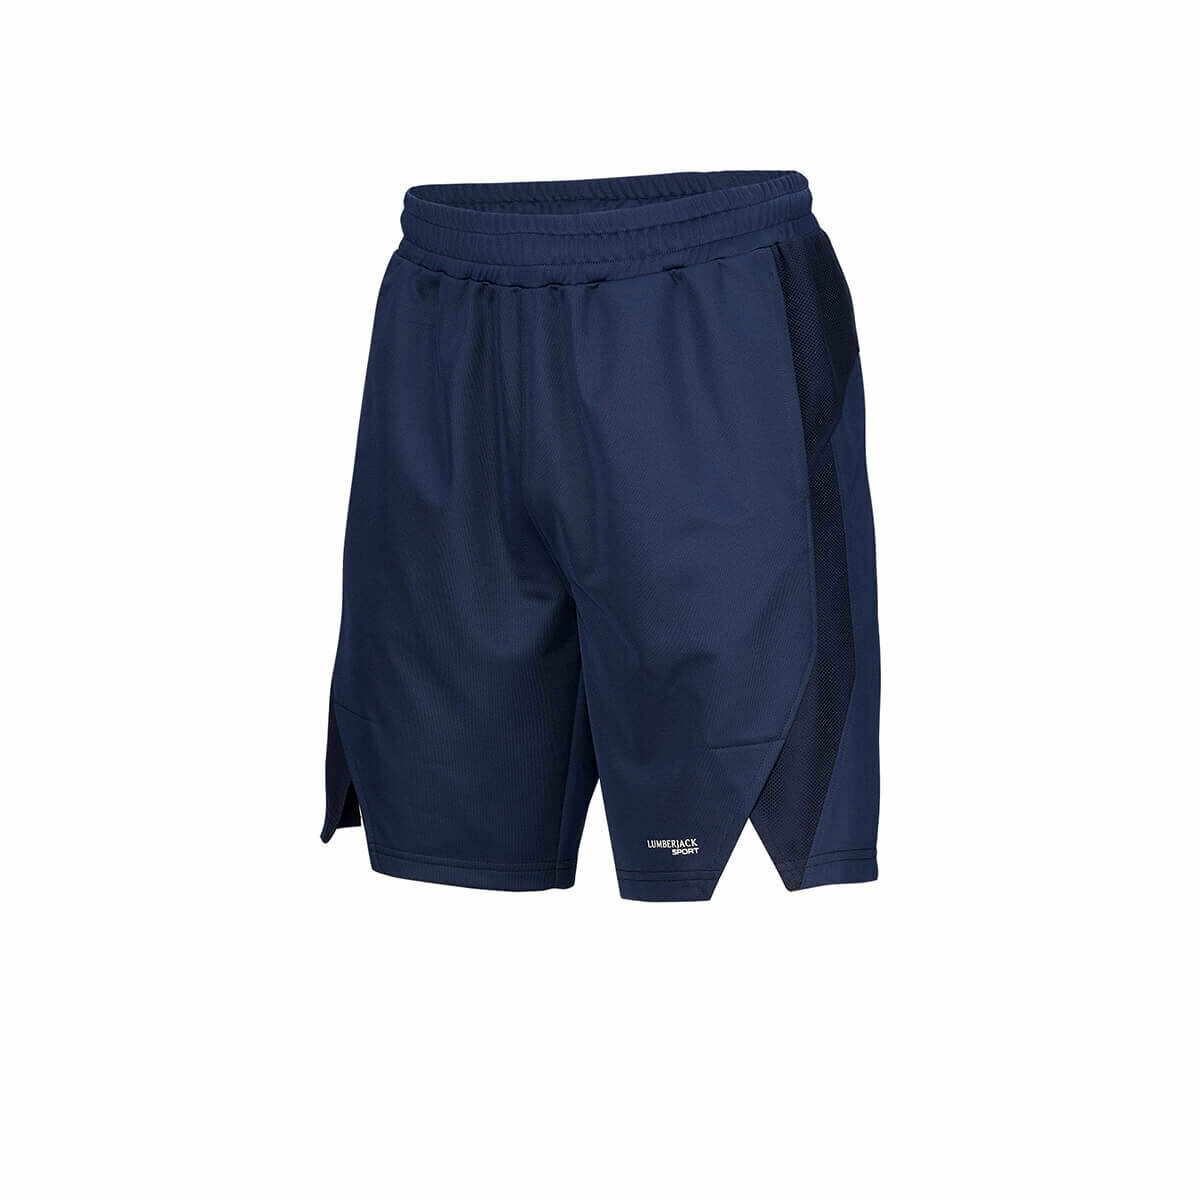 FLO MANSON SHORT Navy Blue Men 'S Shorts LUMBERJACK